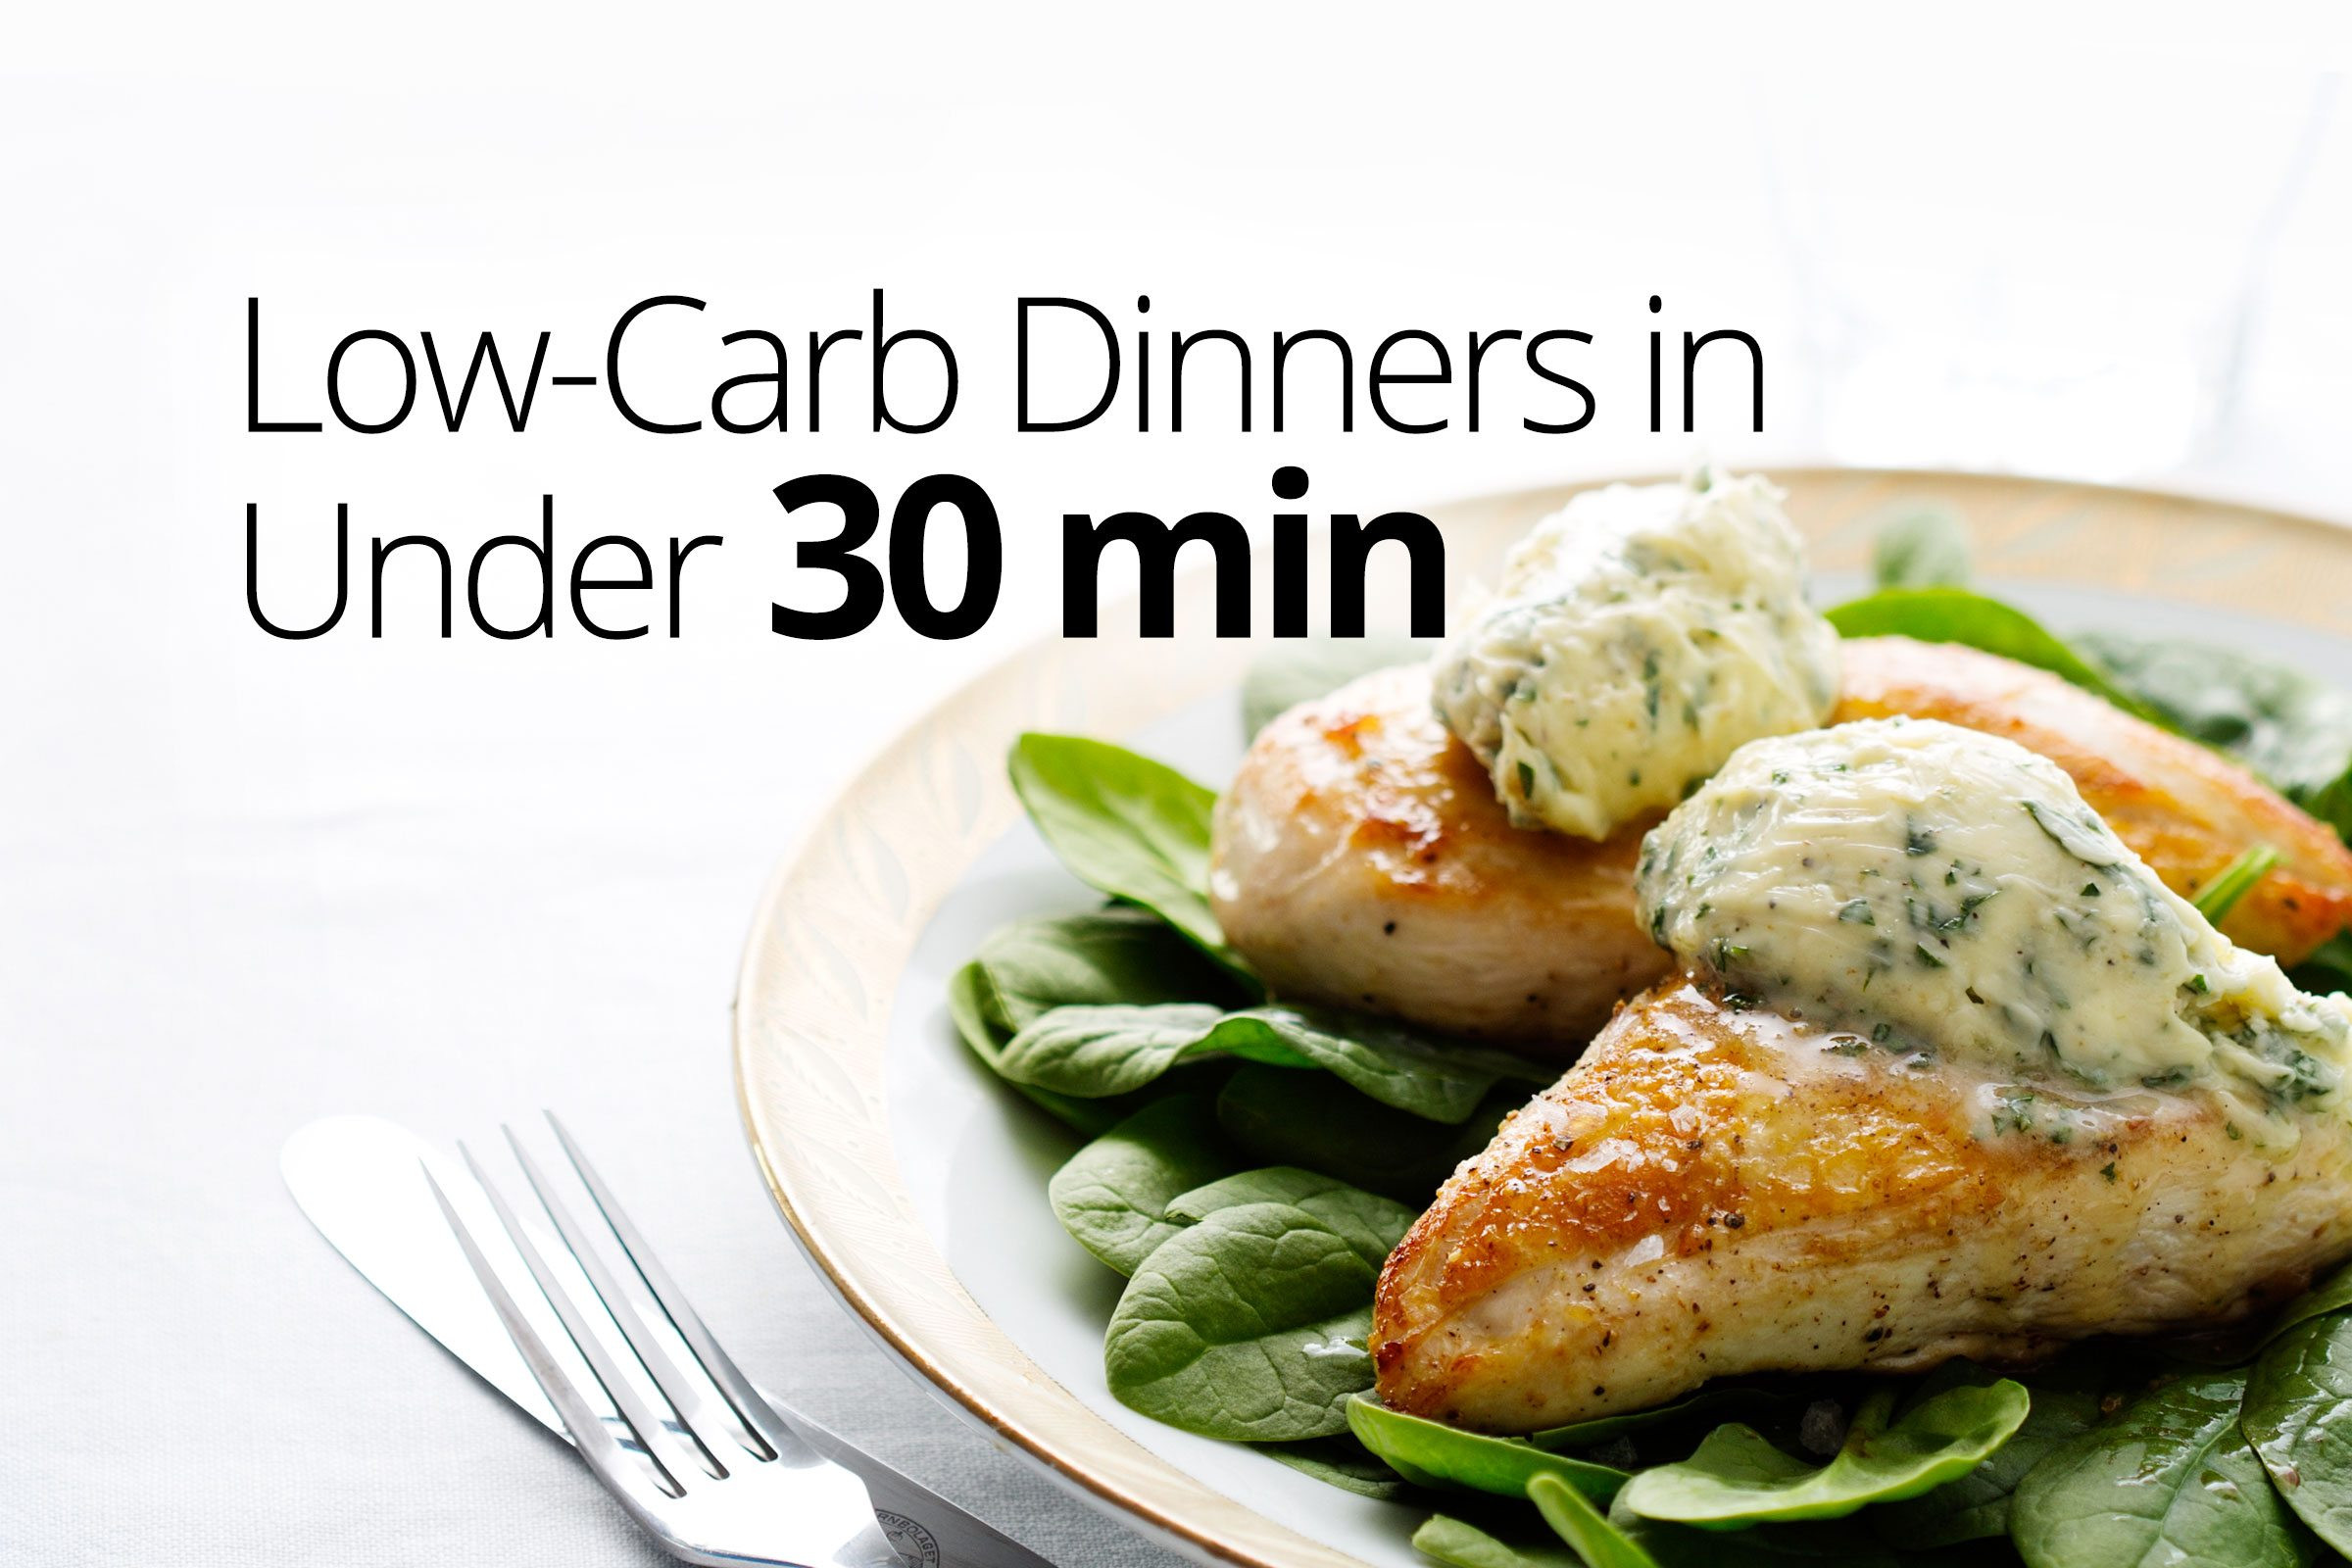 Low Carb Dinner Meals  Low carb dinners in under 30 minutes Diet Doctor